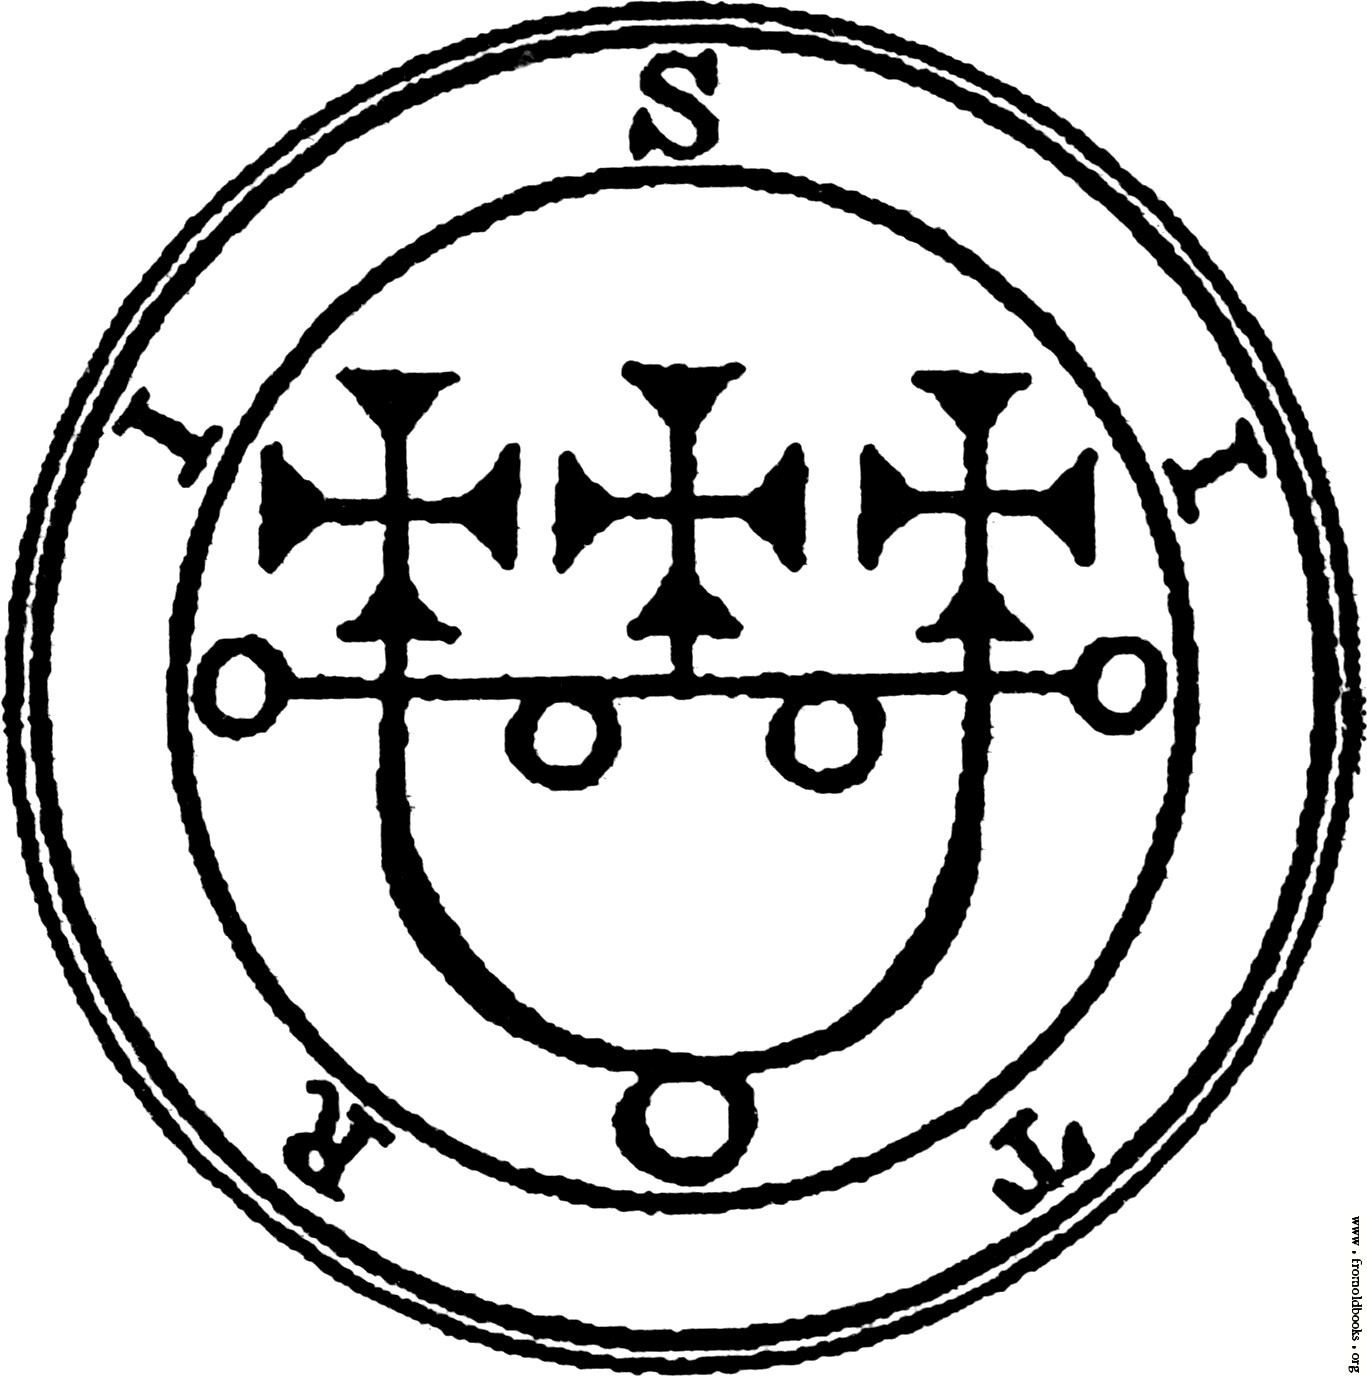 Sytry prince sitri black witch coven 012 seal of sitri q100 1367x1376 biocorpaavc Images